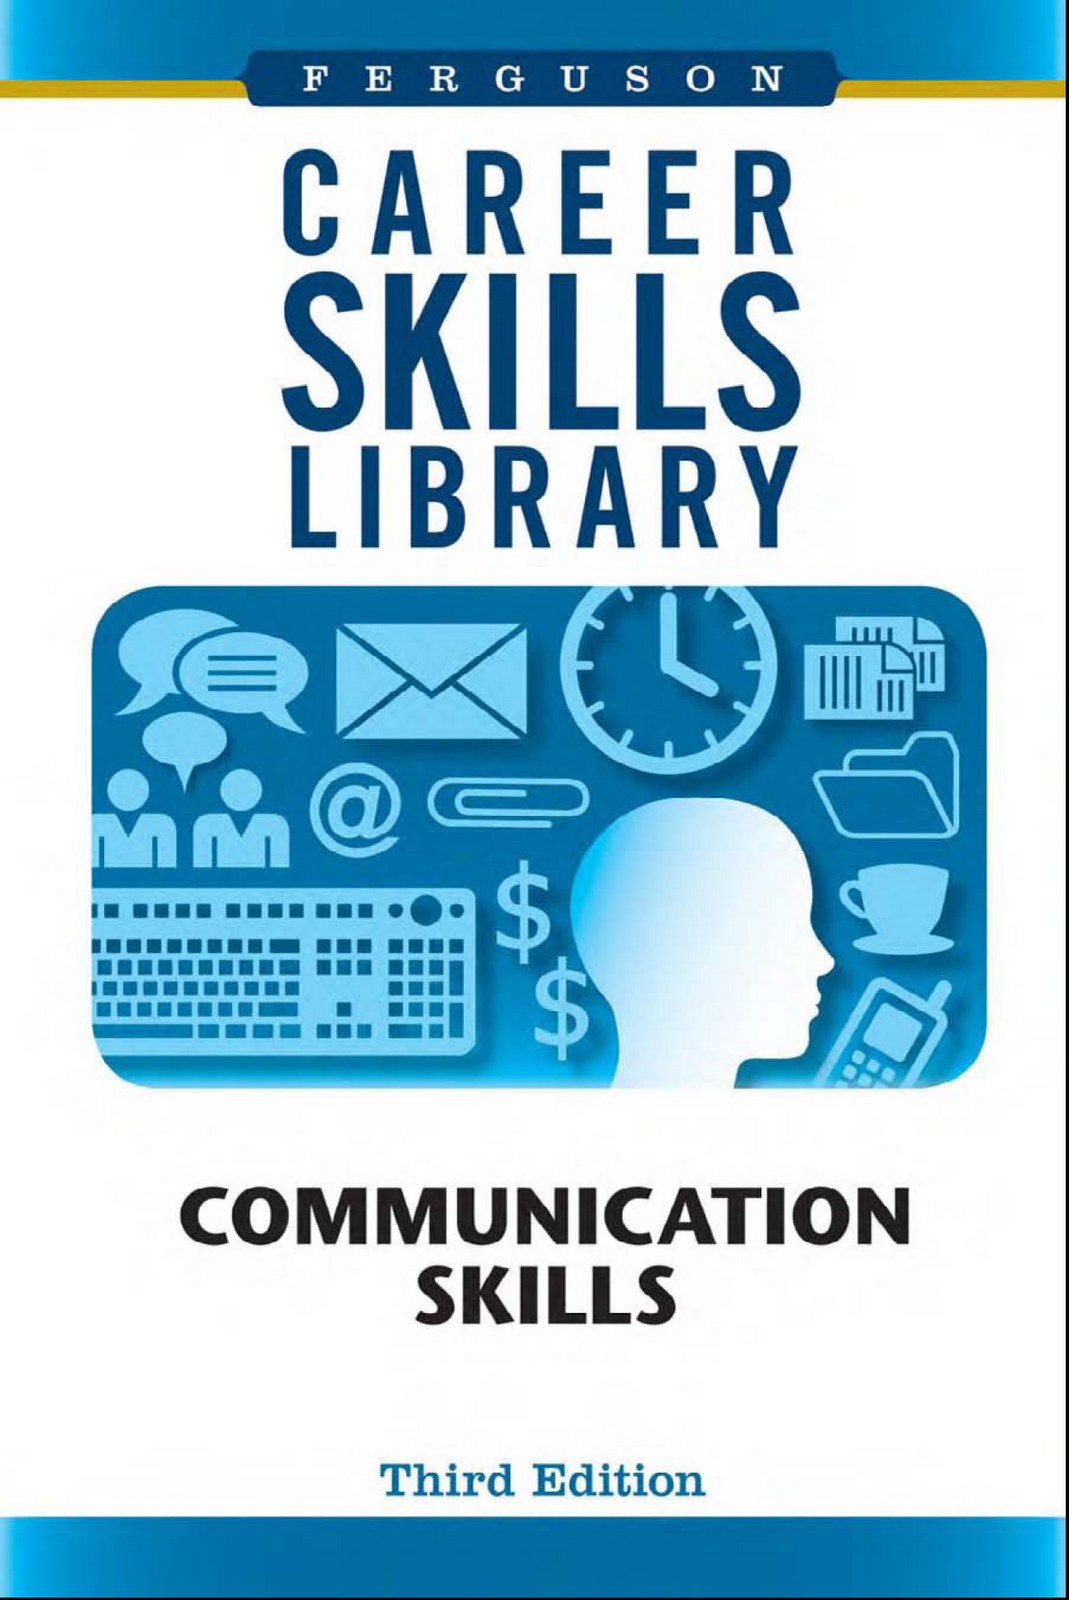 Communication skills books best worst